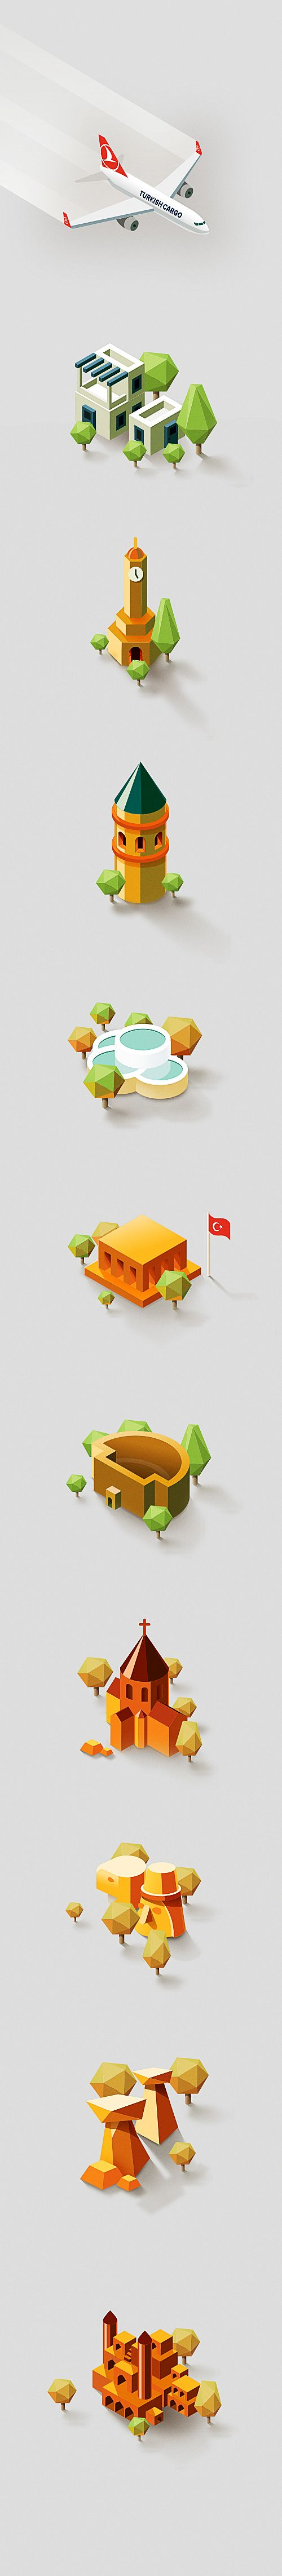 Turkish Cargo / Domestic Flights Print Ad